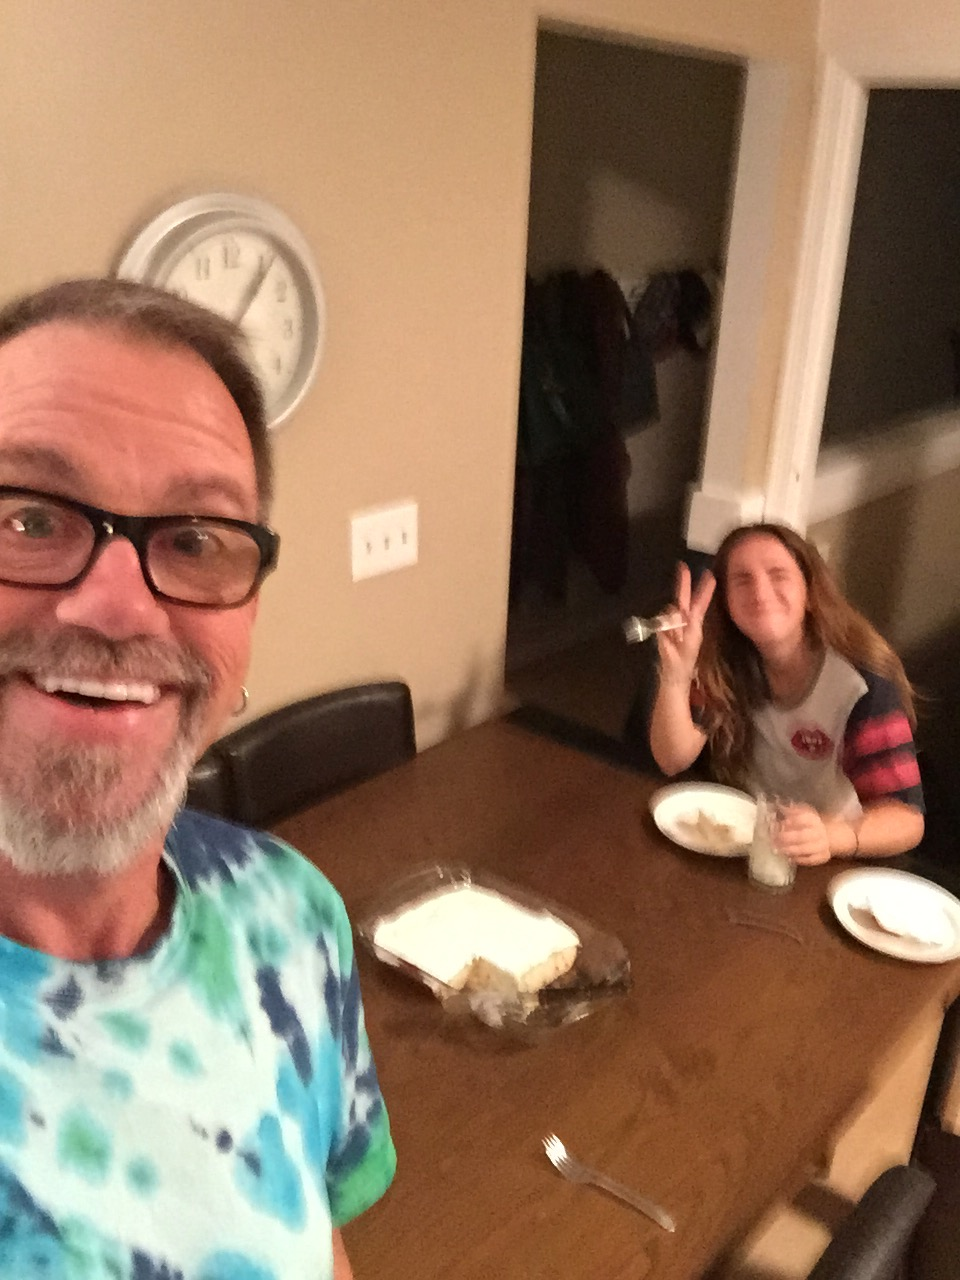 I need to work on my selfie skills! My daughter Lauren in the background eating my cake.